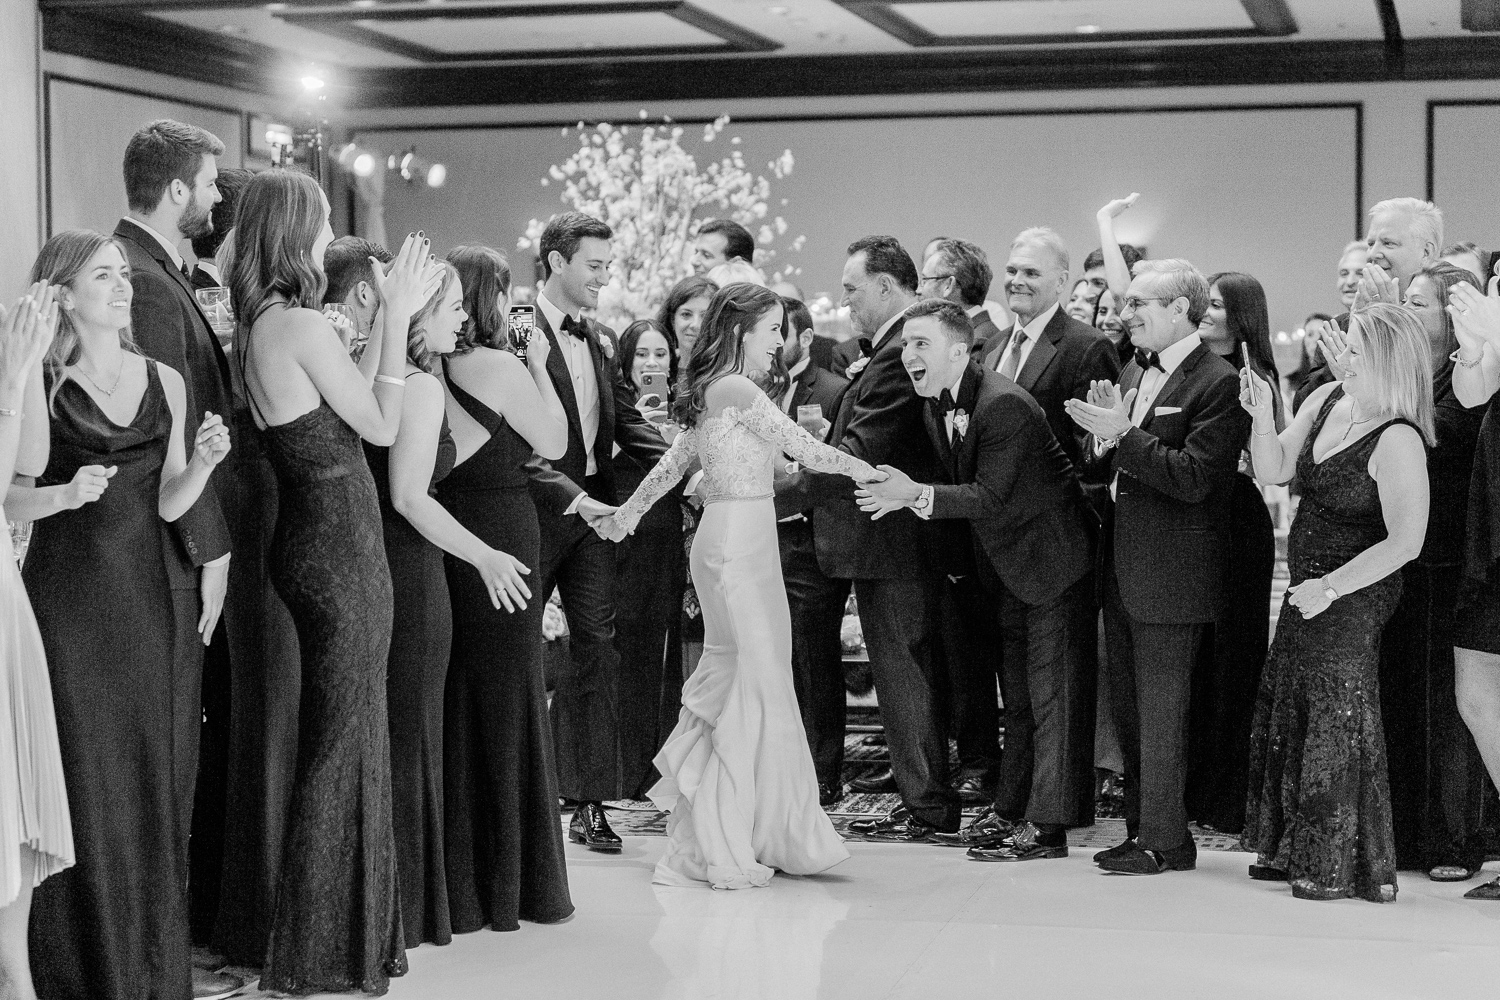 How much does wedding photography cost? – Chicago Naples Fine Art Wedding Photographer